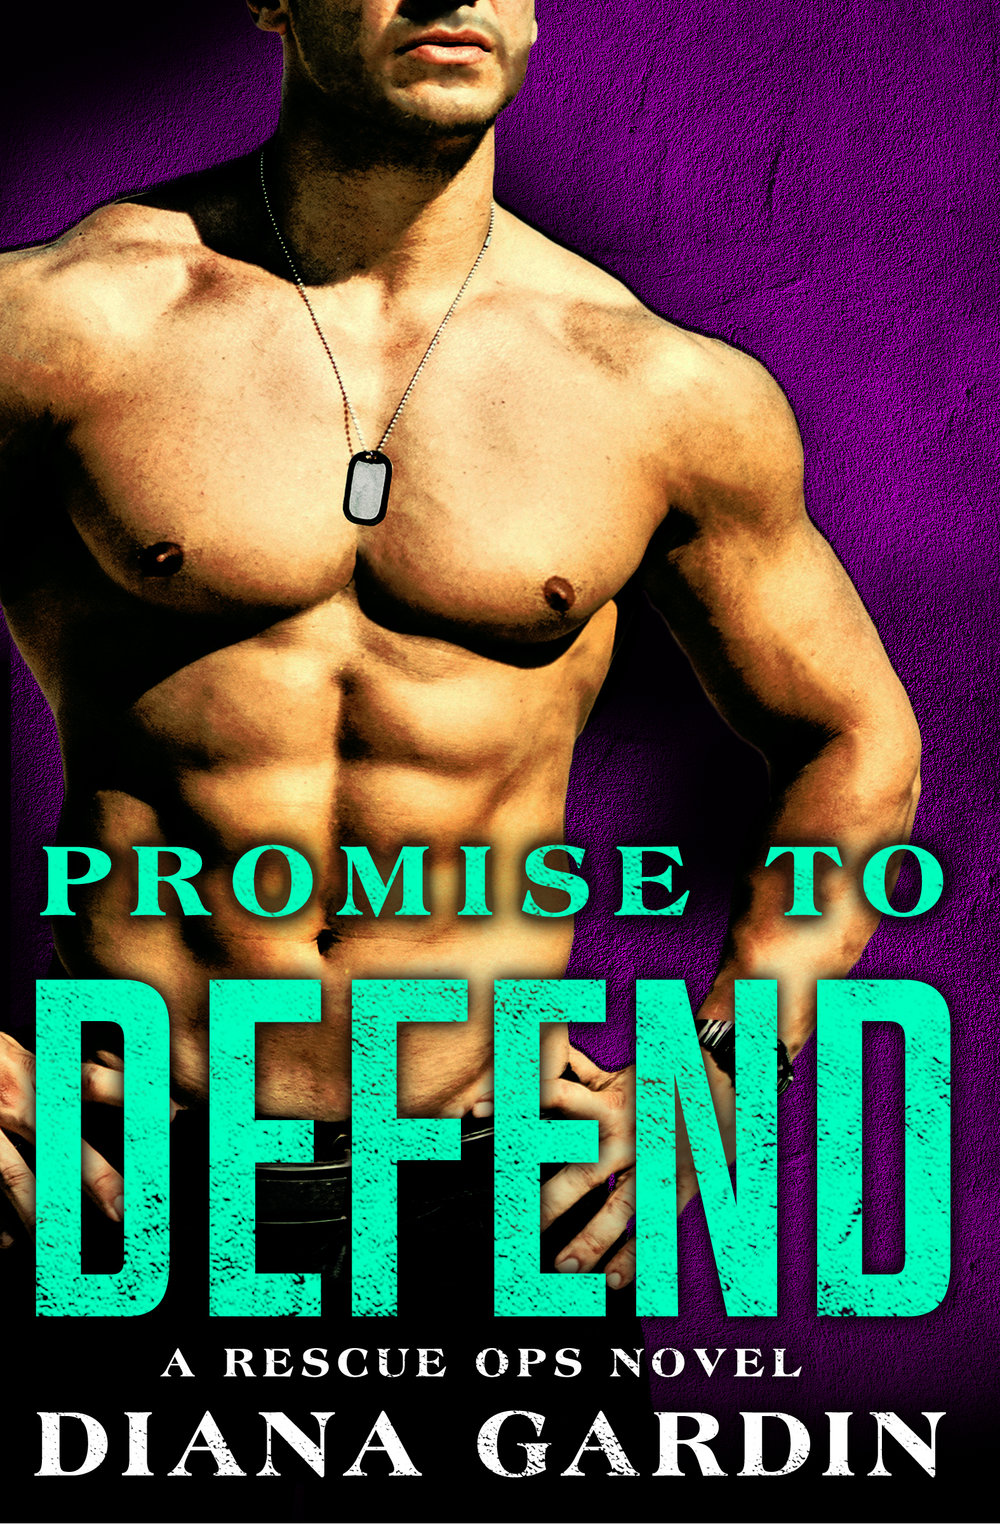 Gardin_PromisetoDefend_ebook.jpg